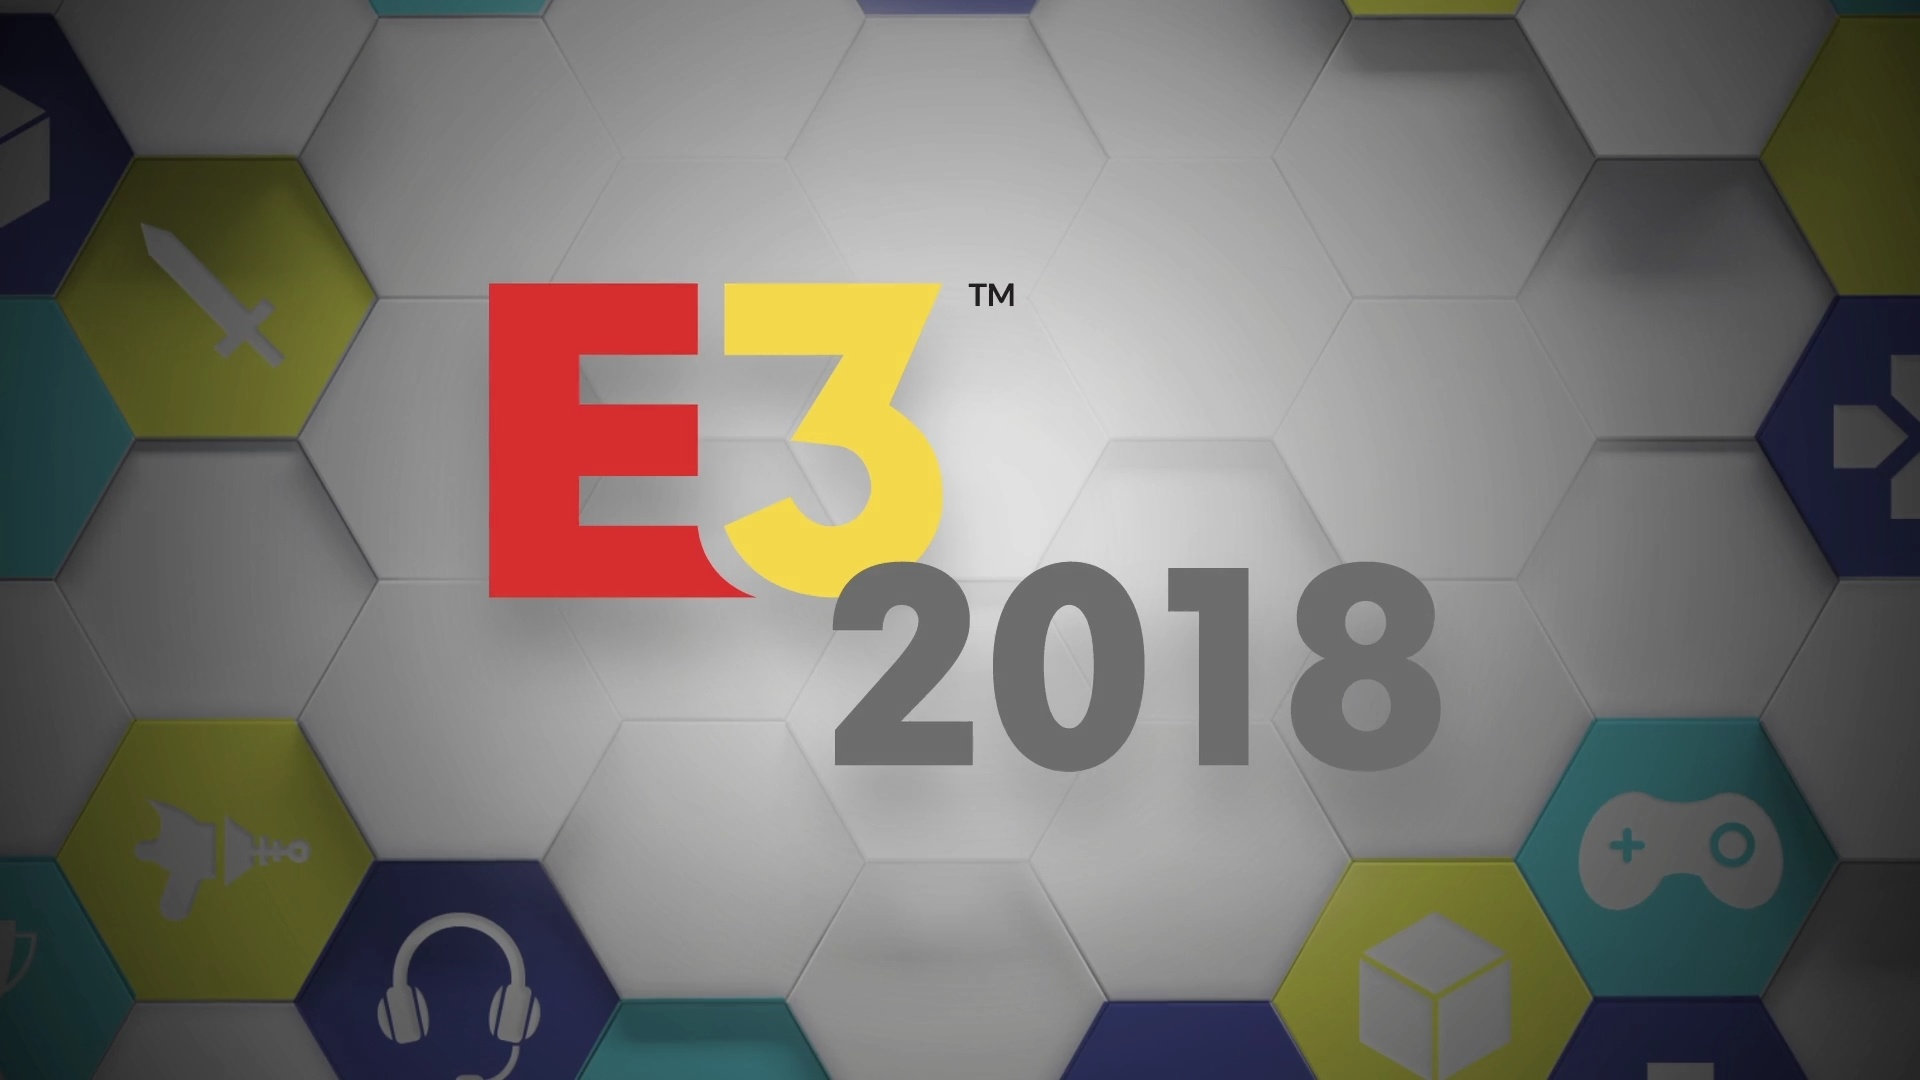 E3 2018 logo officiel